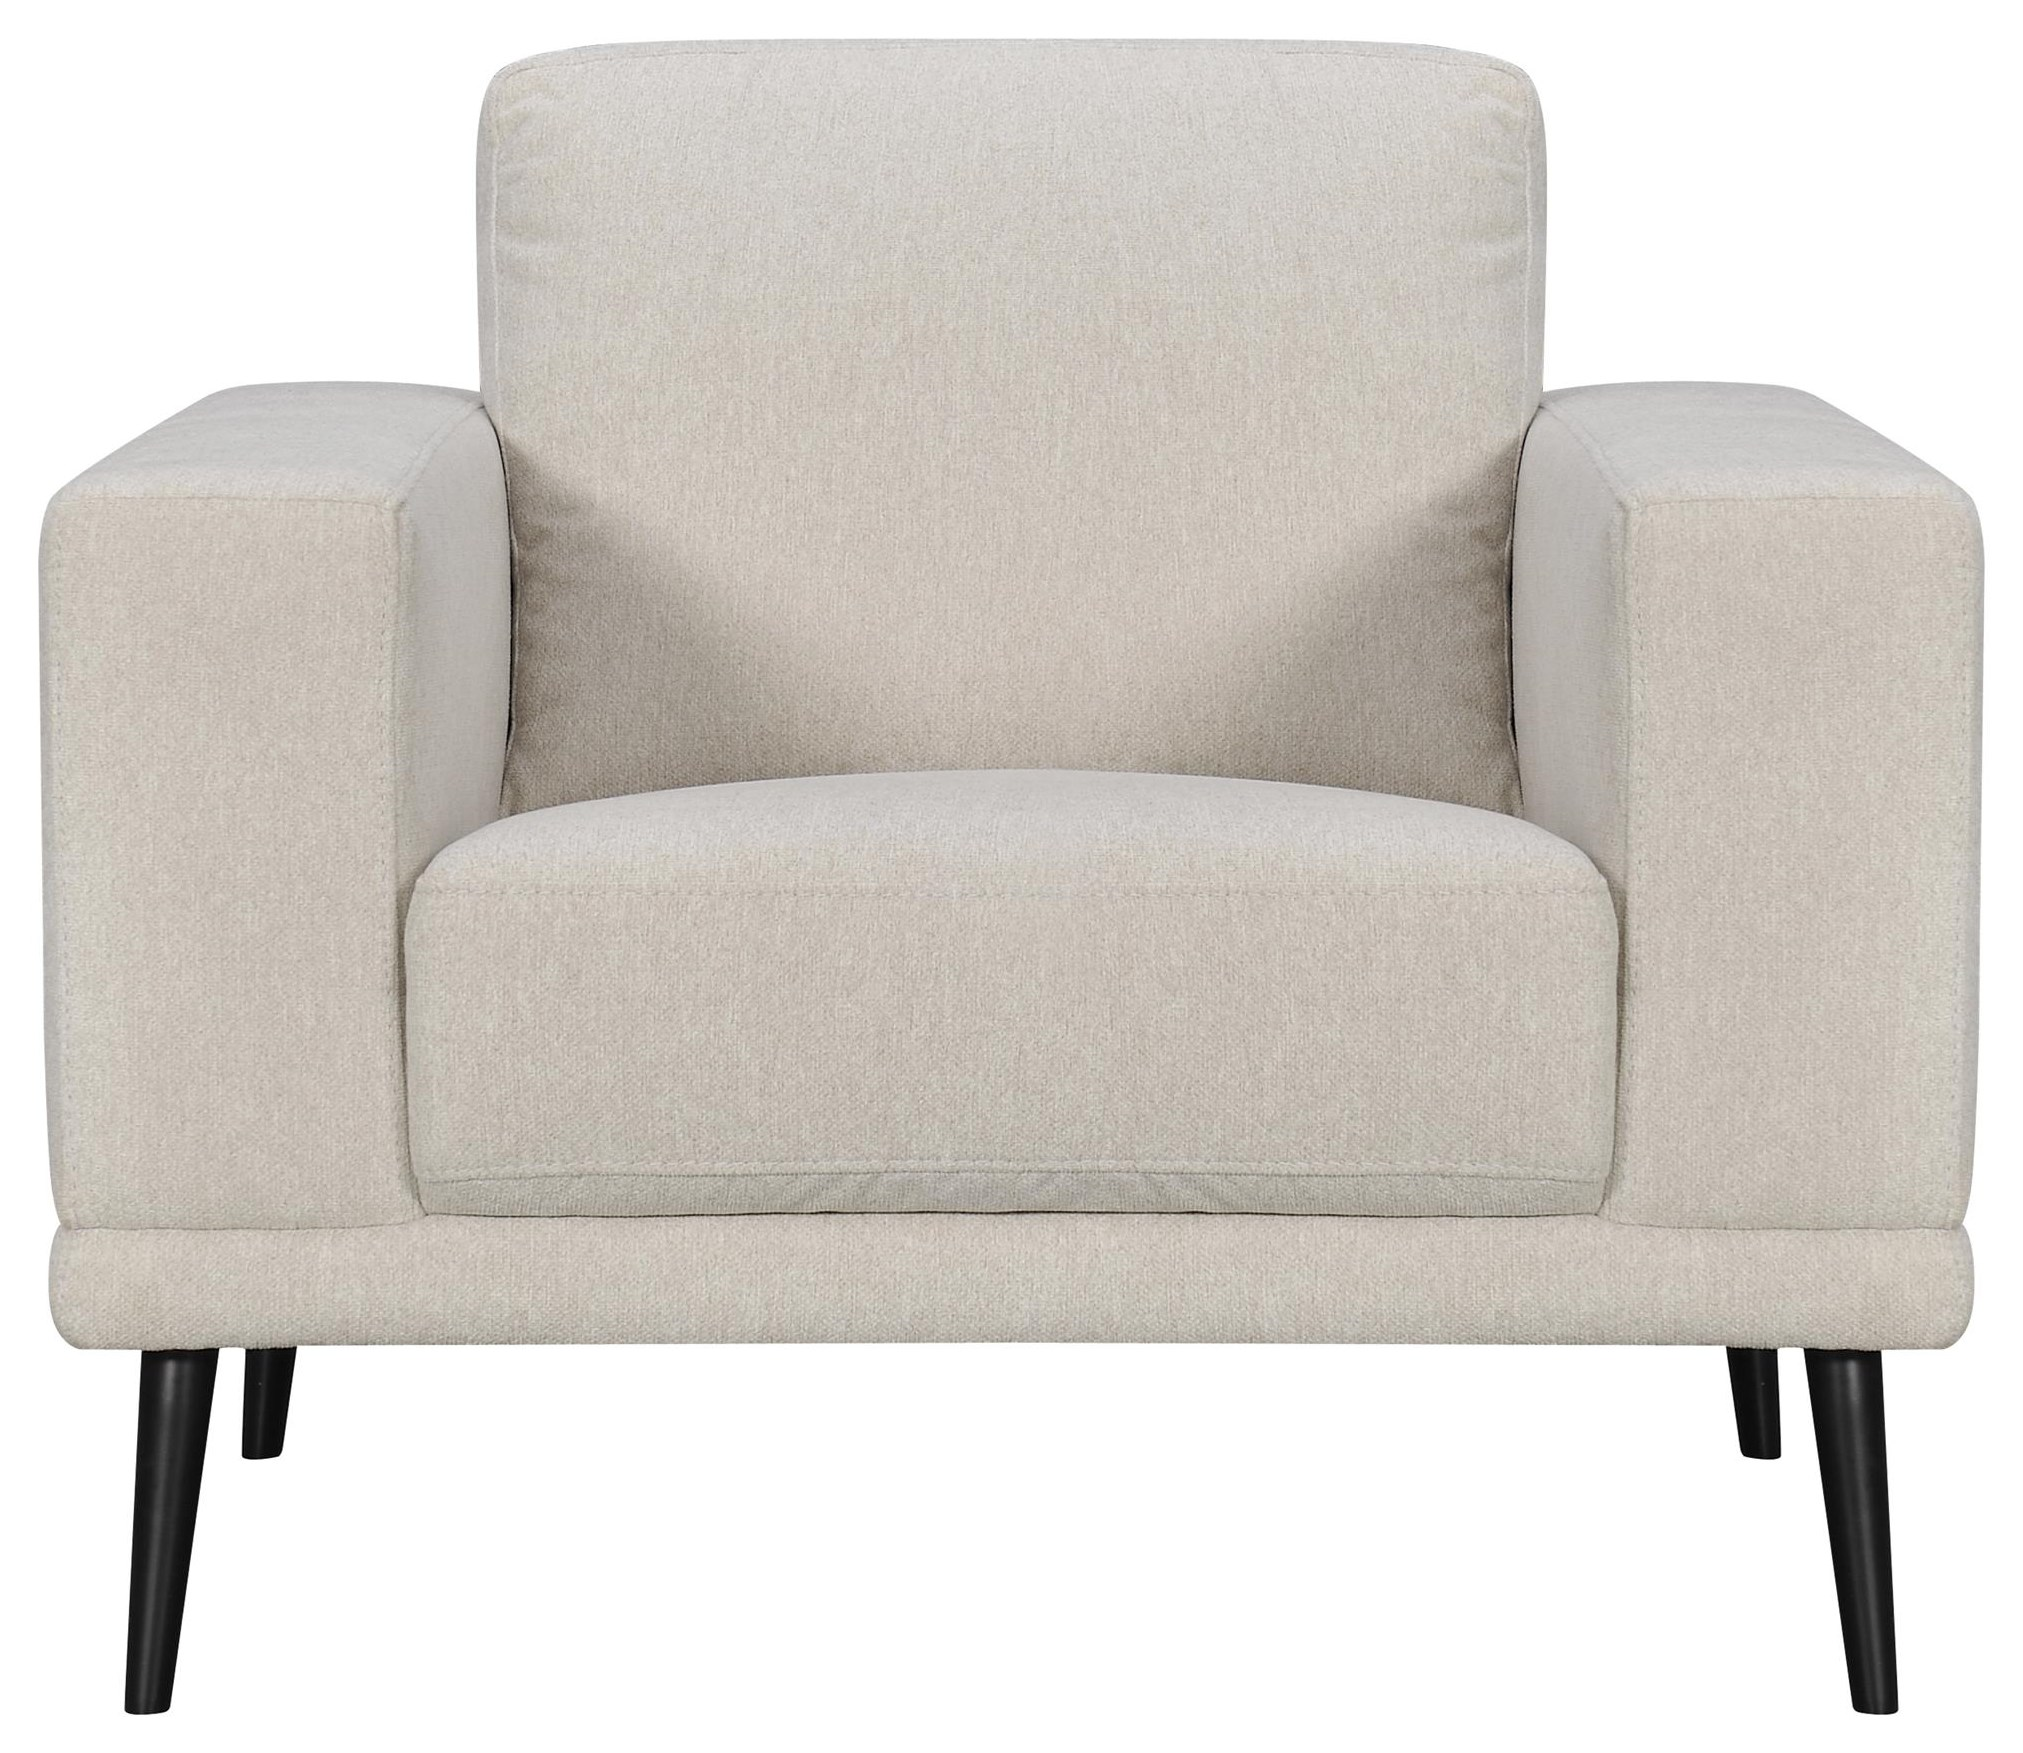 Harlow Chair by Violino at Red Knot